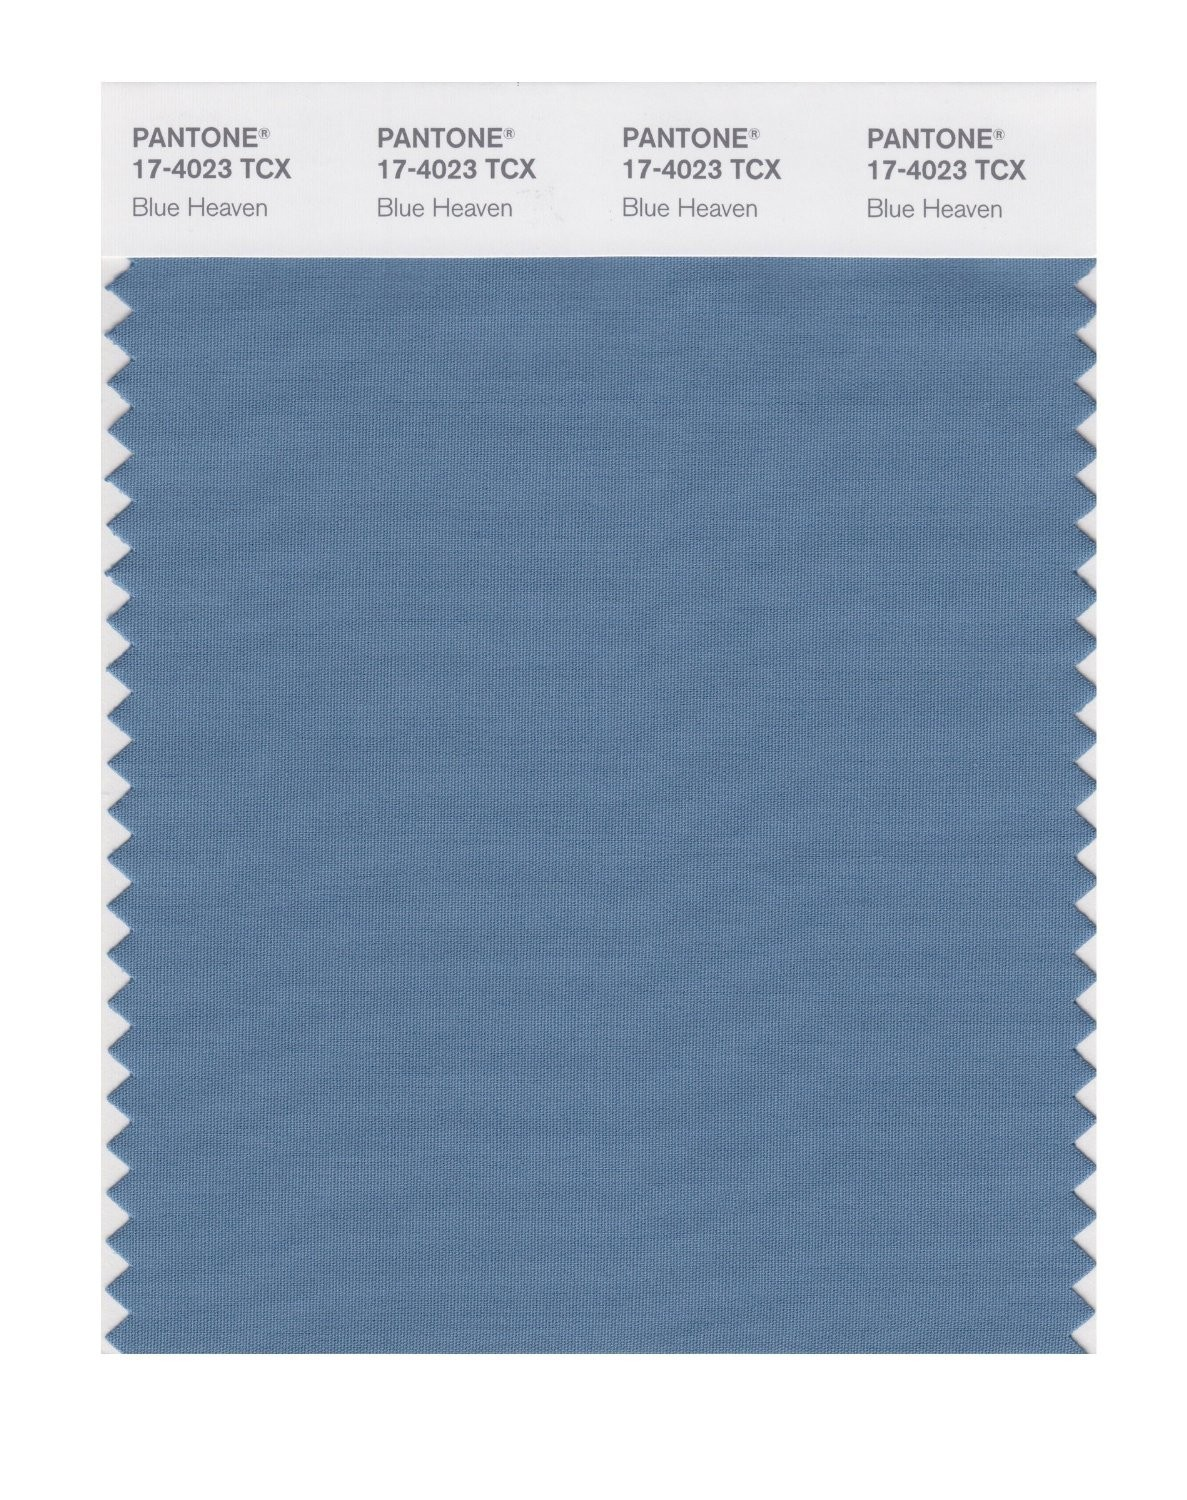 Pantone 17-4023 TCX Swatch Card Blue Heaven